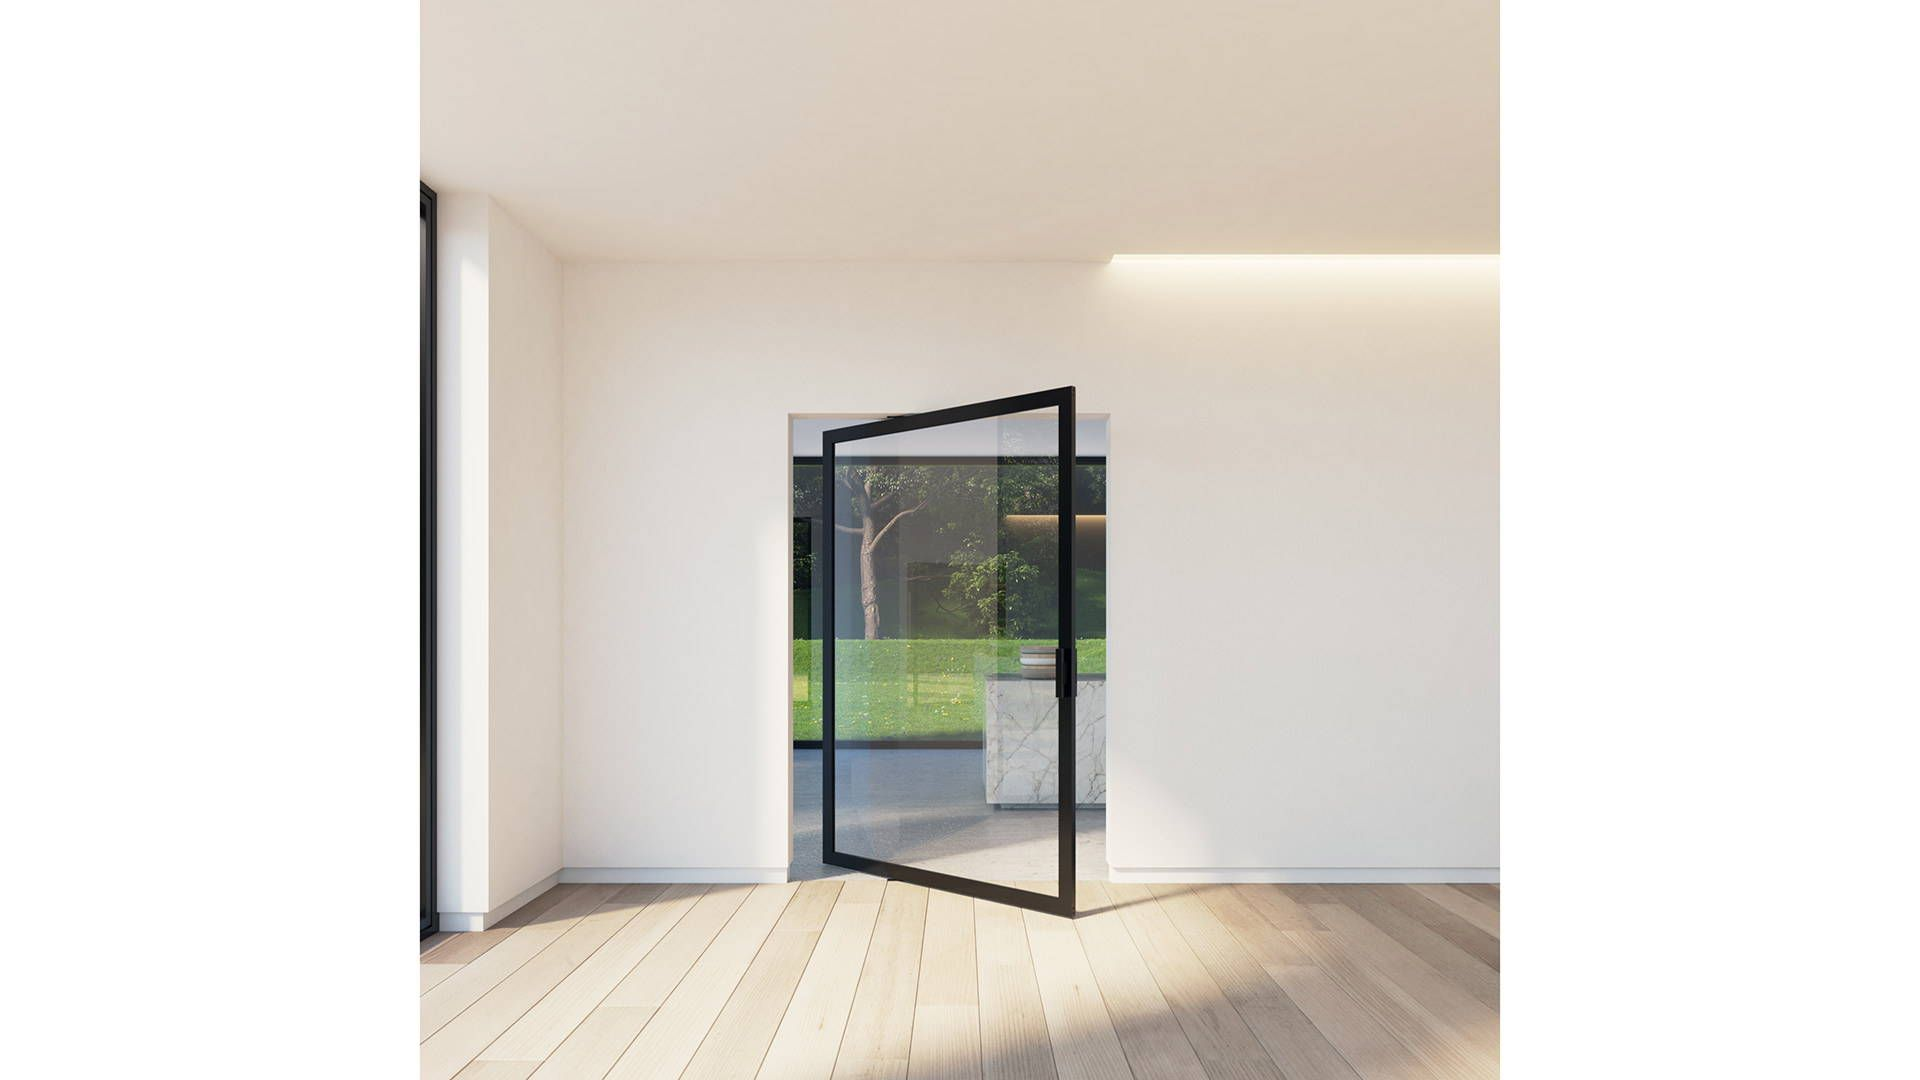 Pivoting room dividers with a minimal aluminium frame and invisible